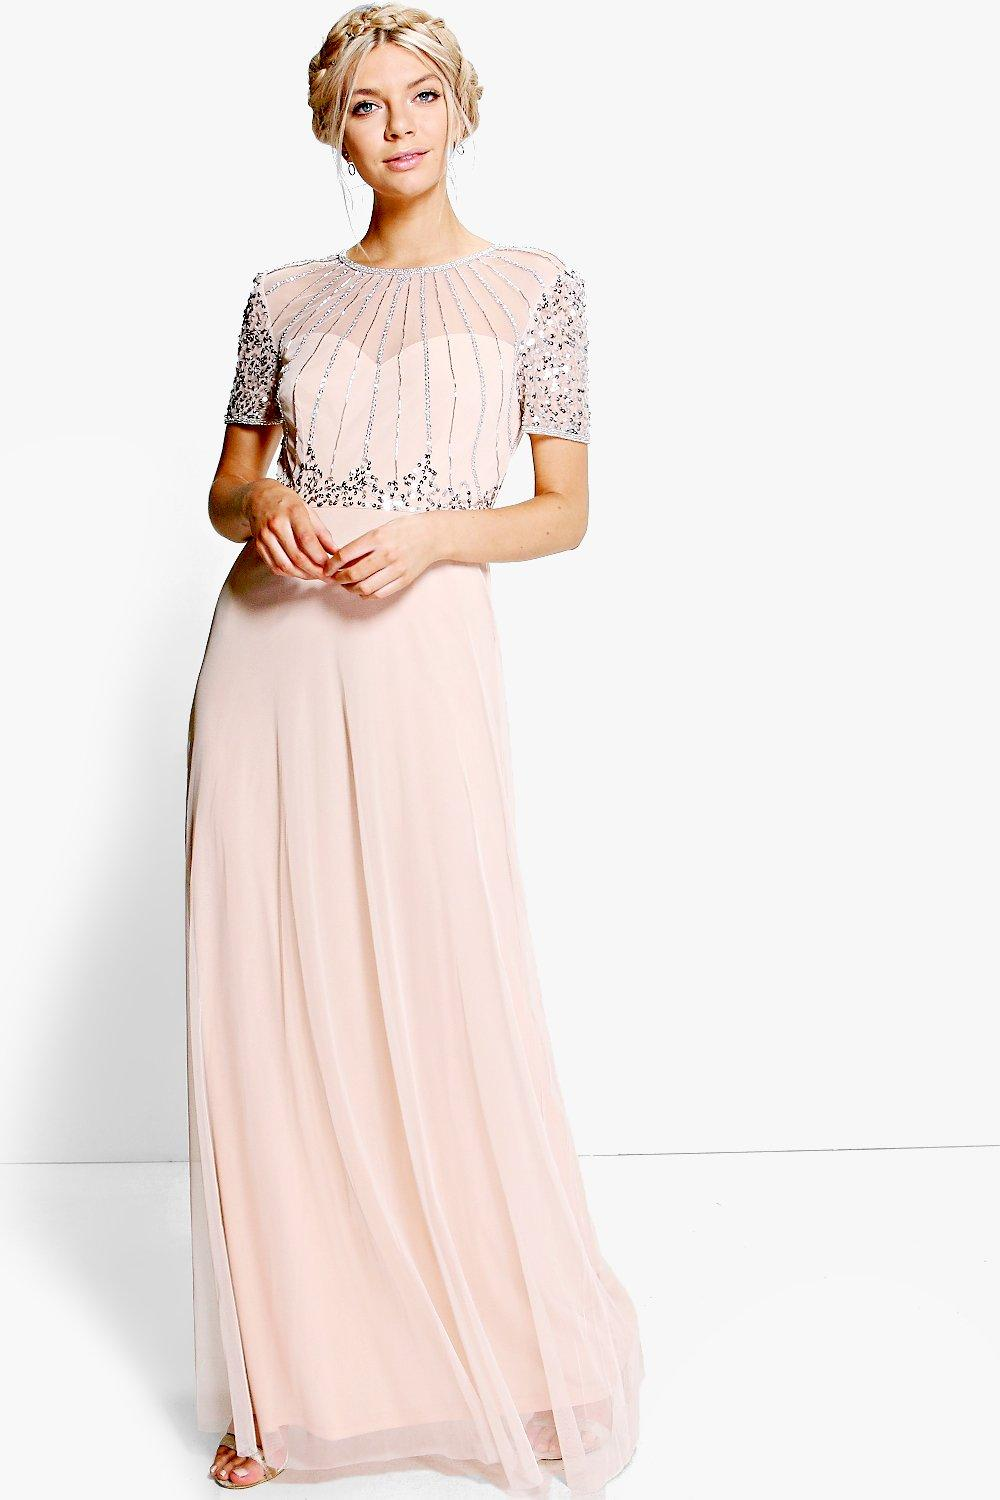 1930s Evening Dresses | Old Hollywood Silver Screen Dresses Womens Boutique Beaded Maxi Dress - pink - 14 $36.00 AT vintagedancer.com